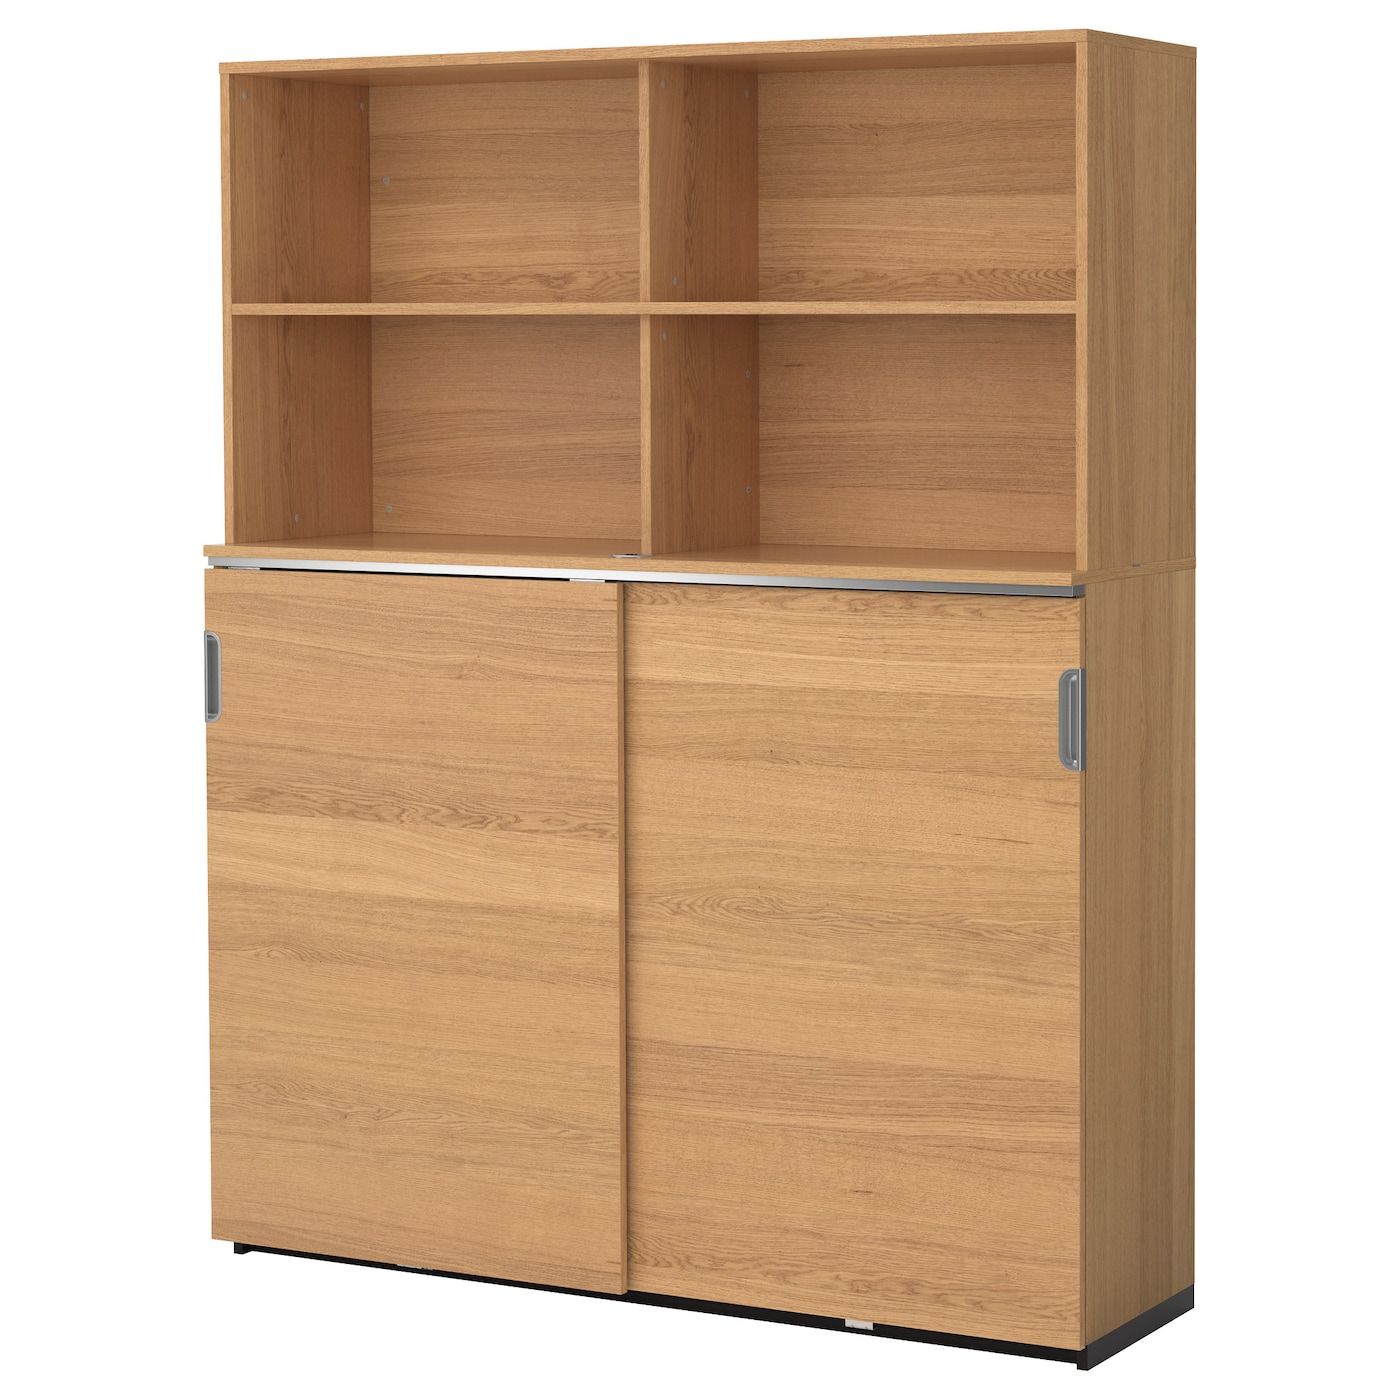 Ikea Galant Galant Storage Combination W Sliding Doors Oak Veneer 160